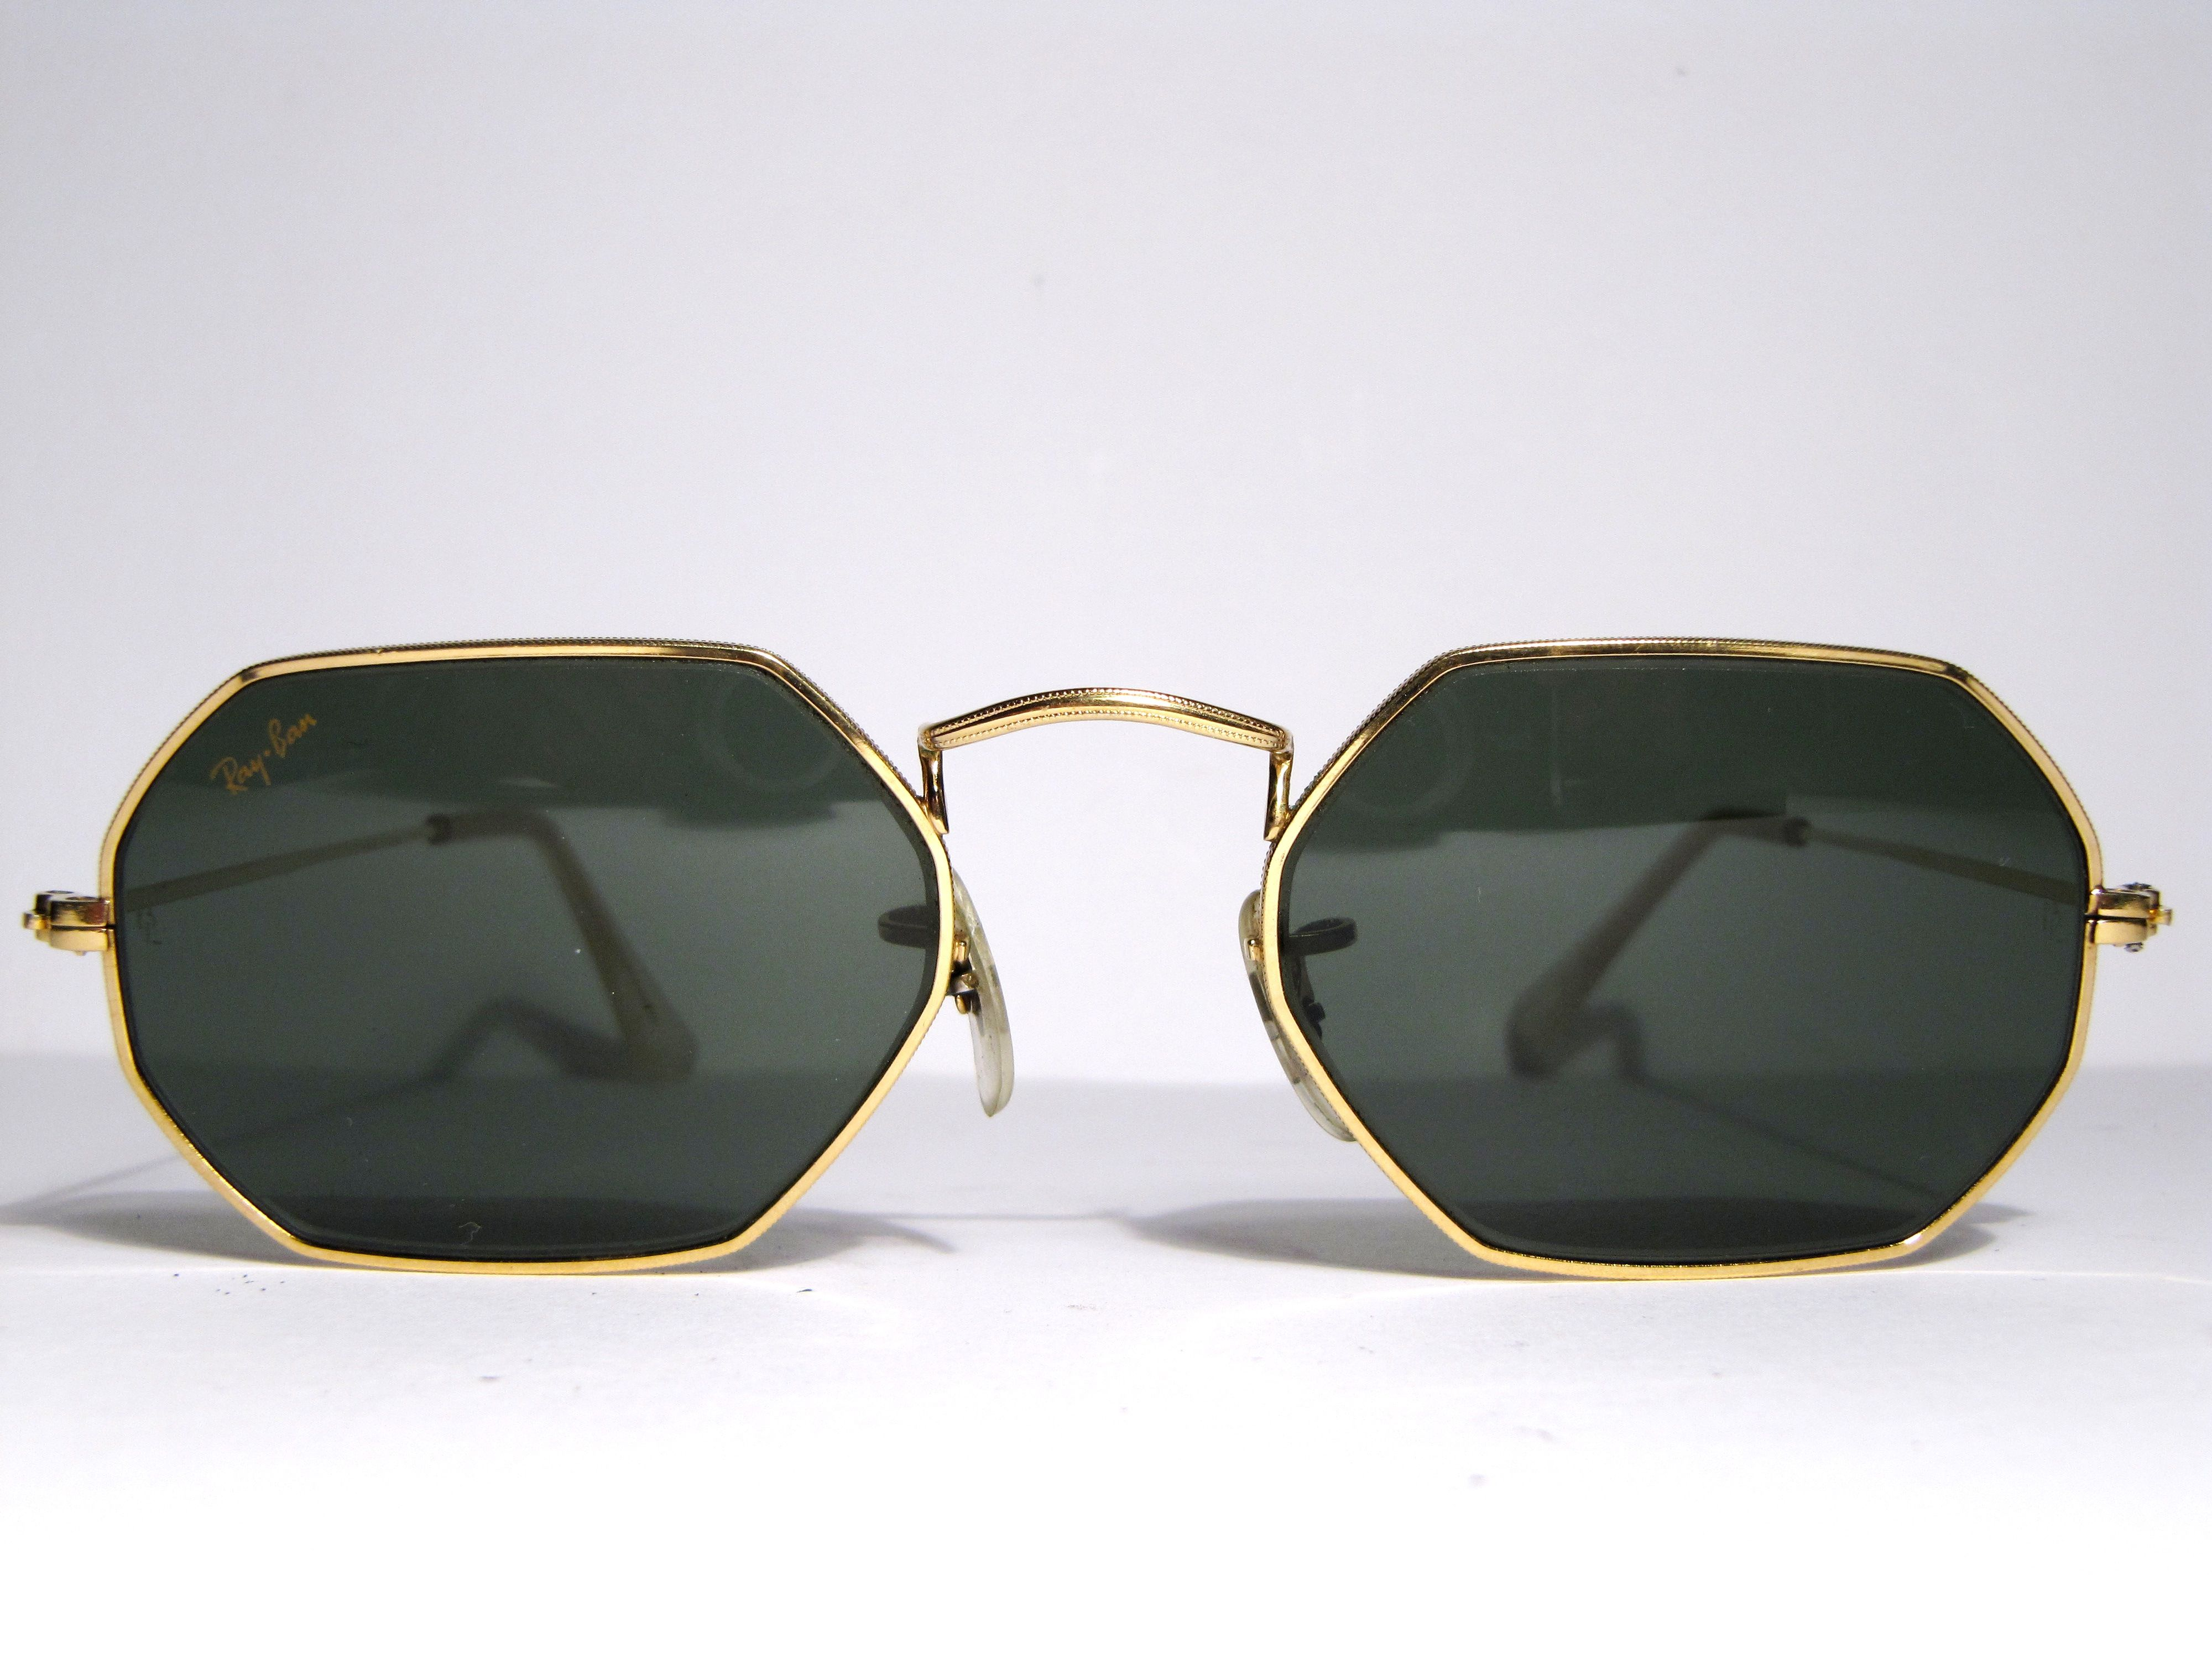 Ray Ban Octagon U.S.A B L   lookstory   Ray ban sunglasses ... 8e33c98d343